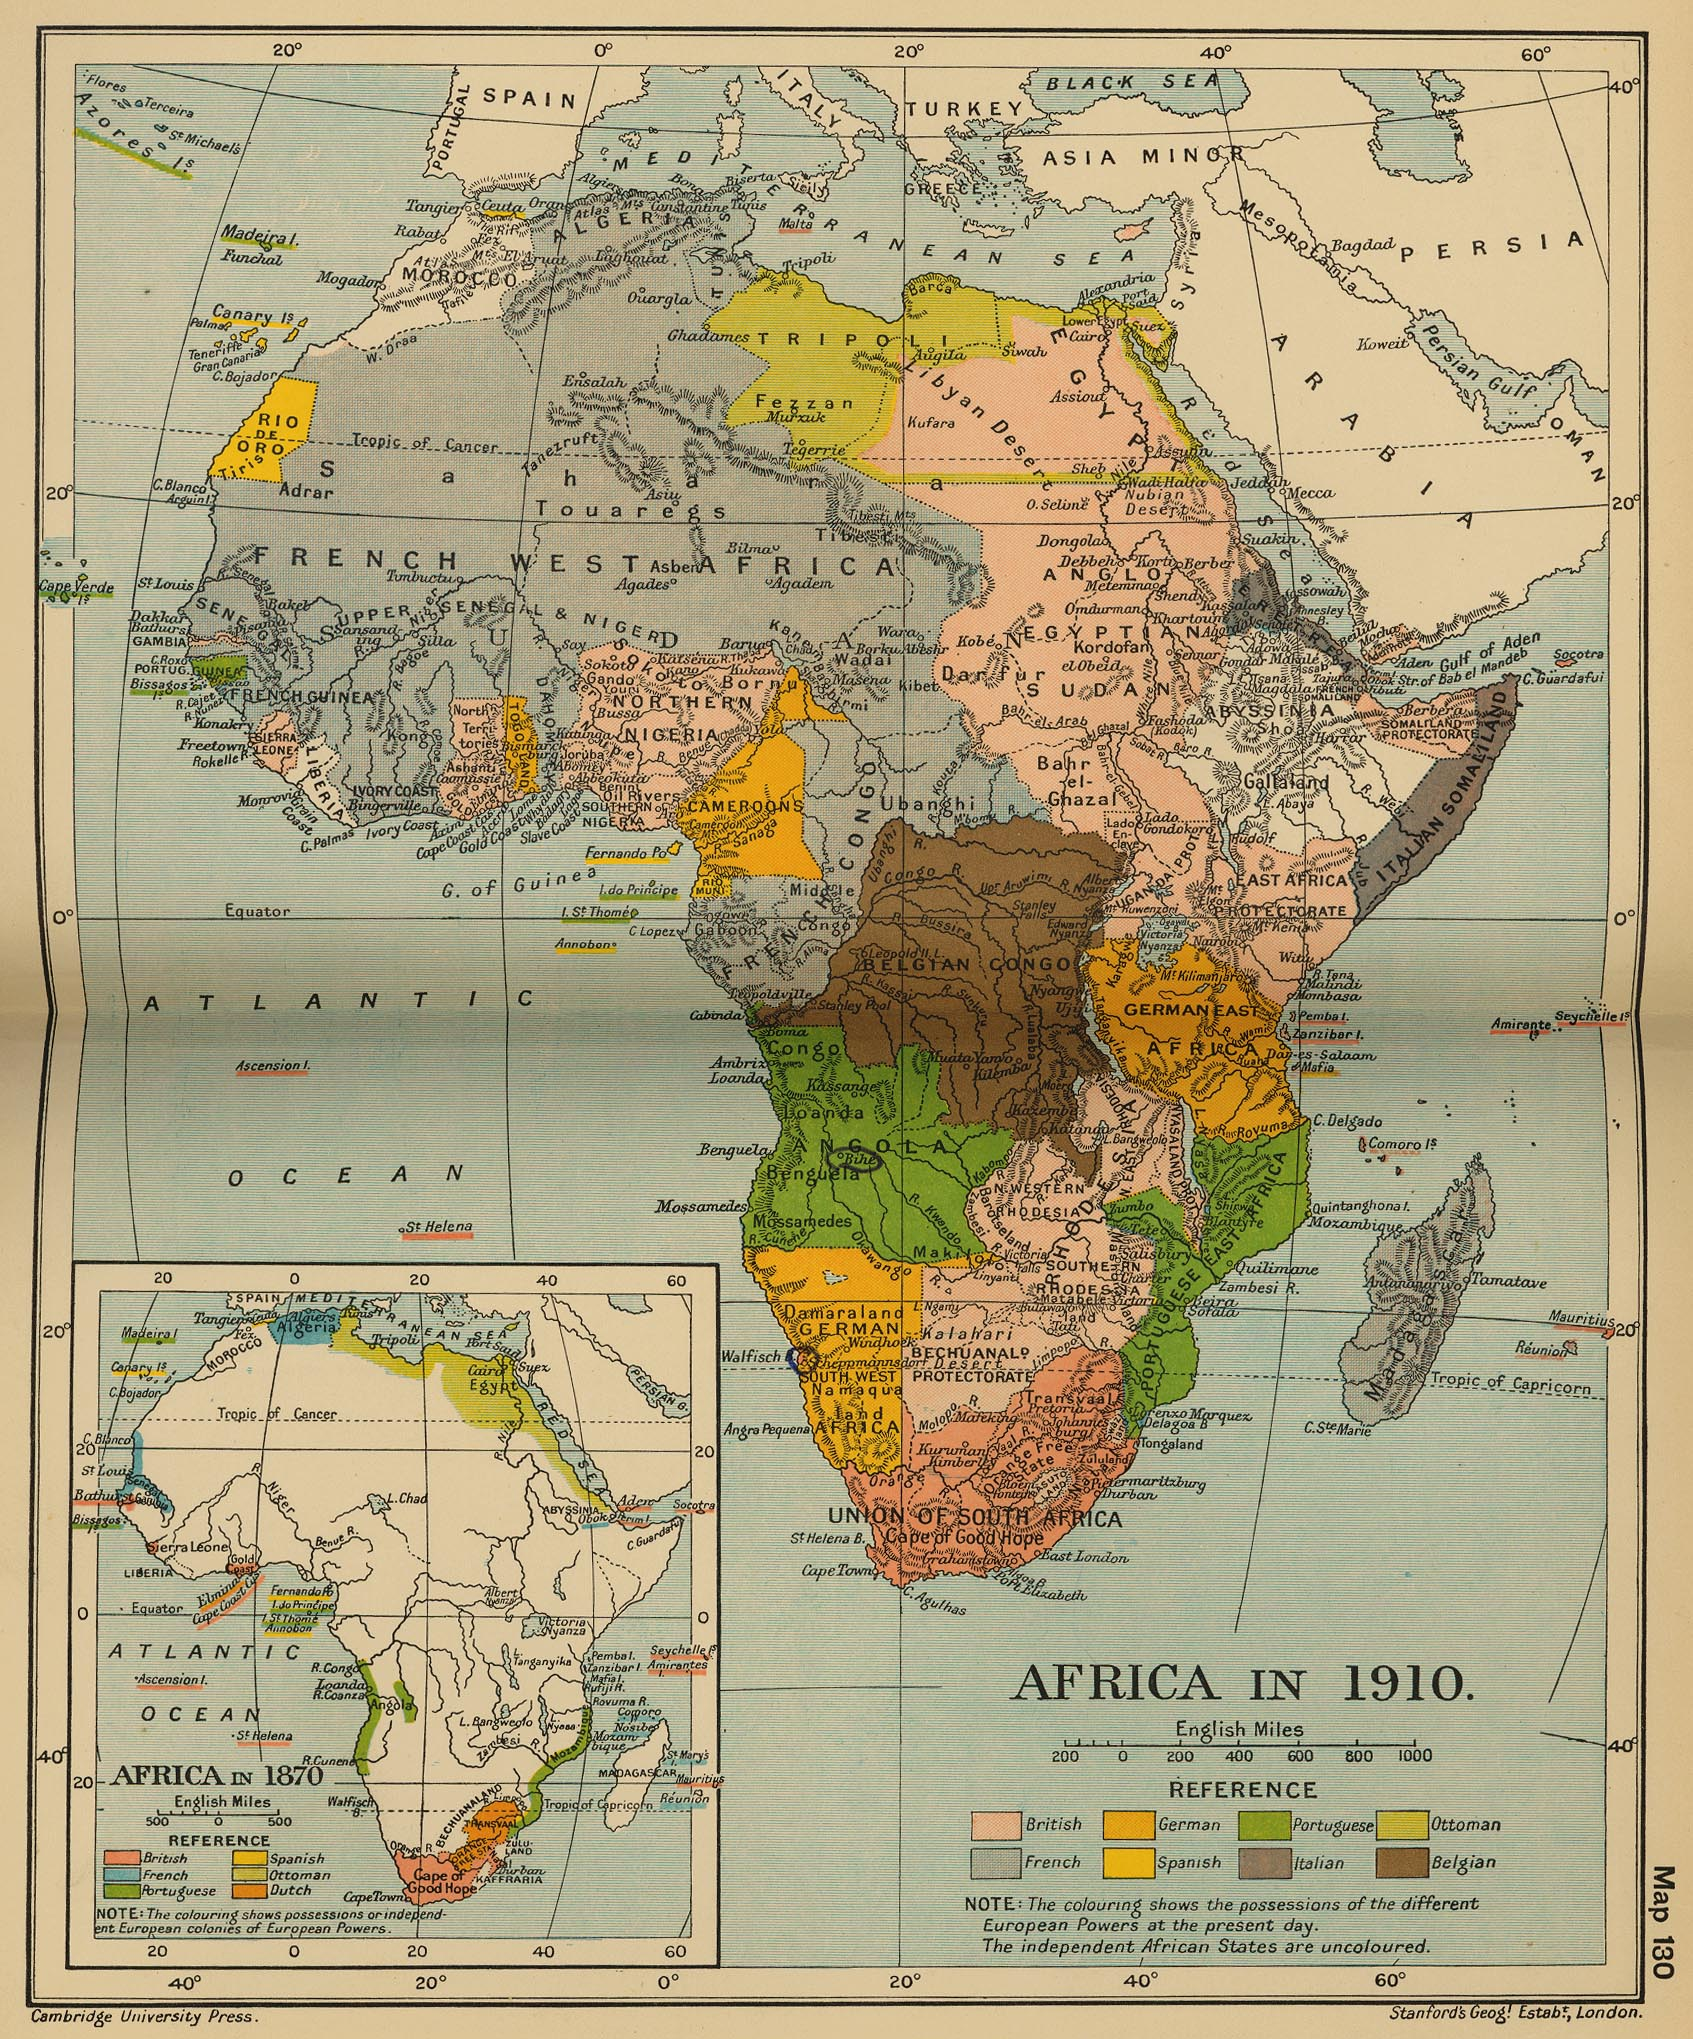 Historical map of Africa in 1910. Inset: Africa in 1870.